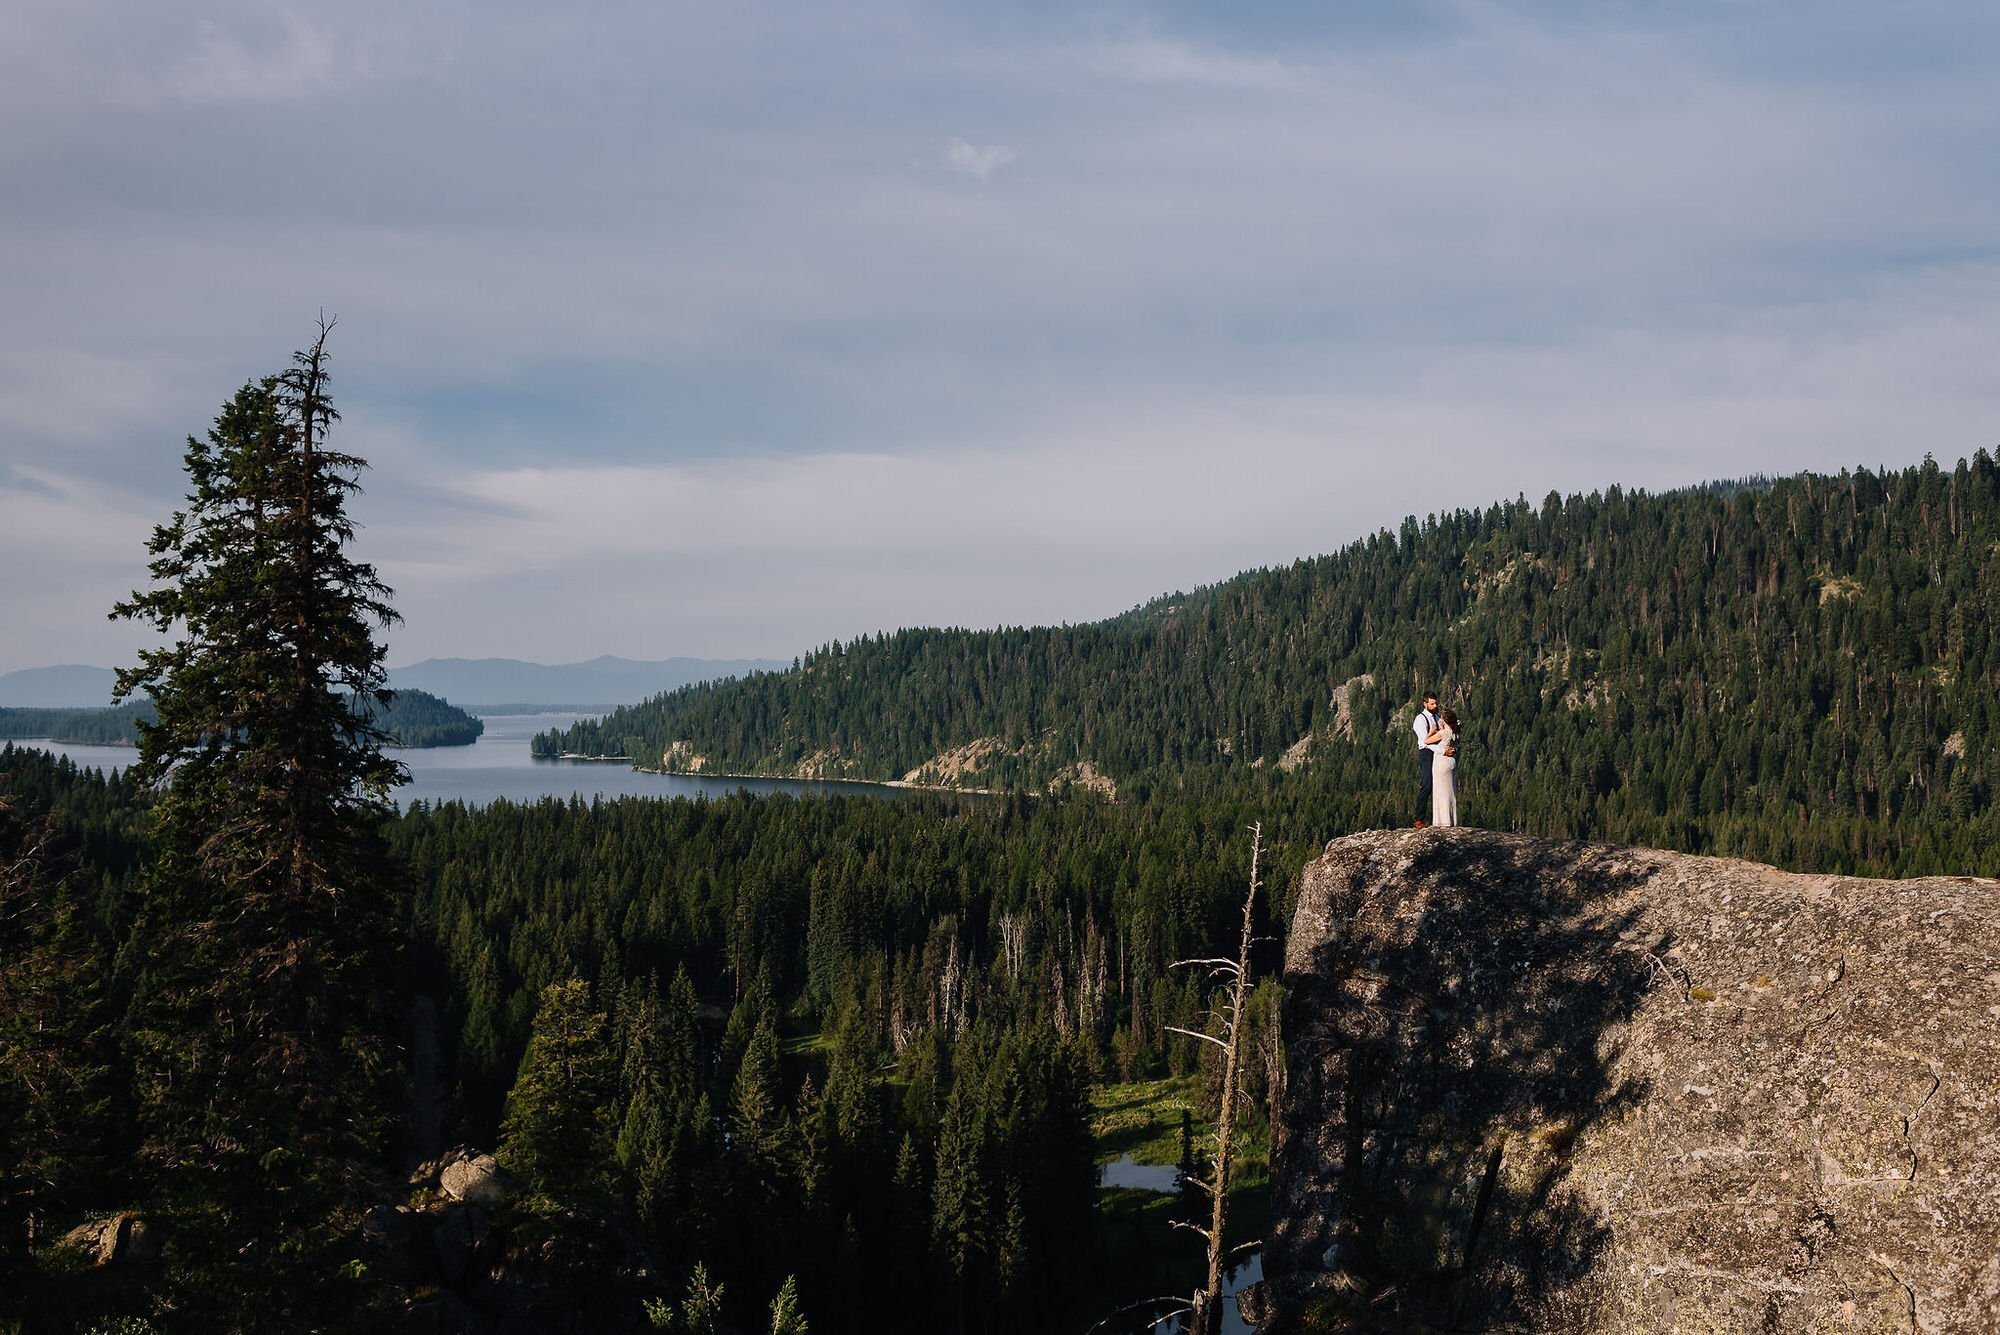 McCall Idaho elopement with a forest view and a couple standing by the edge with a lake view